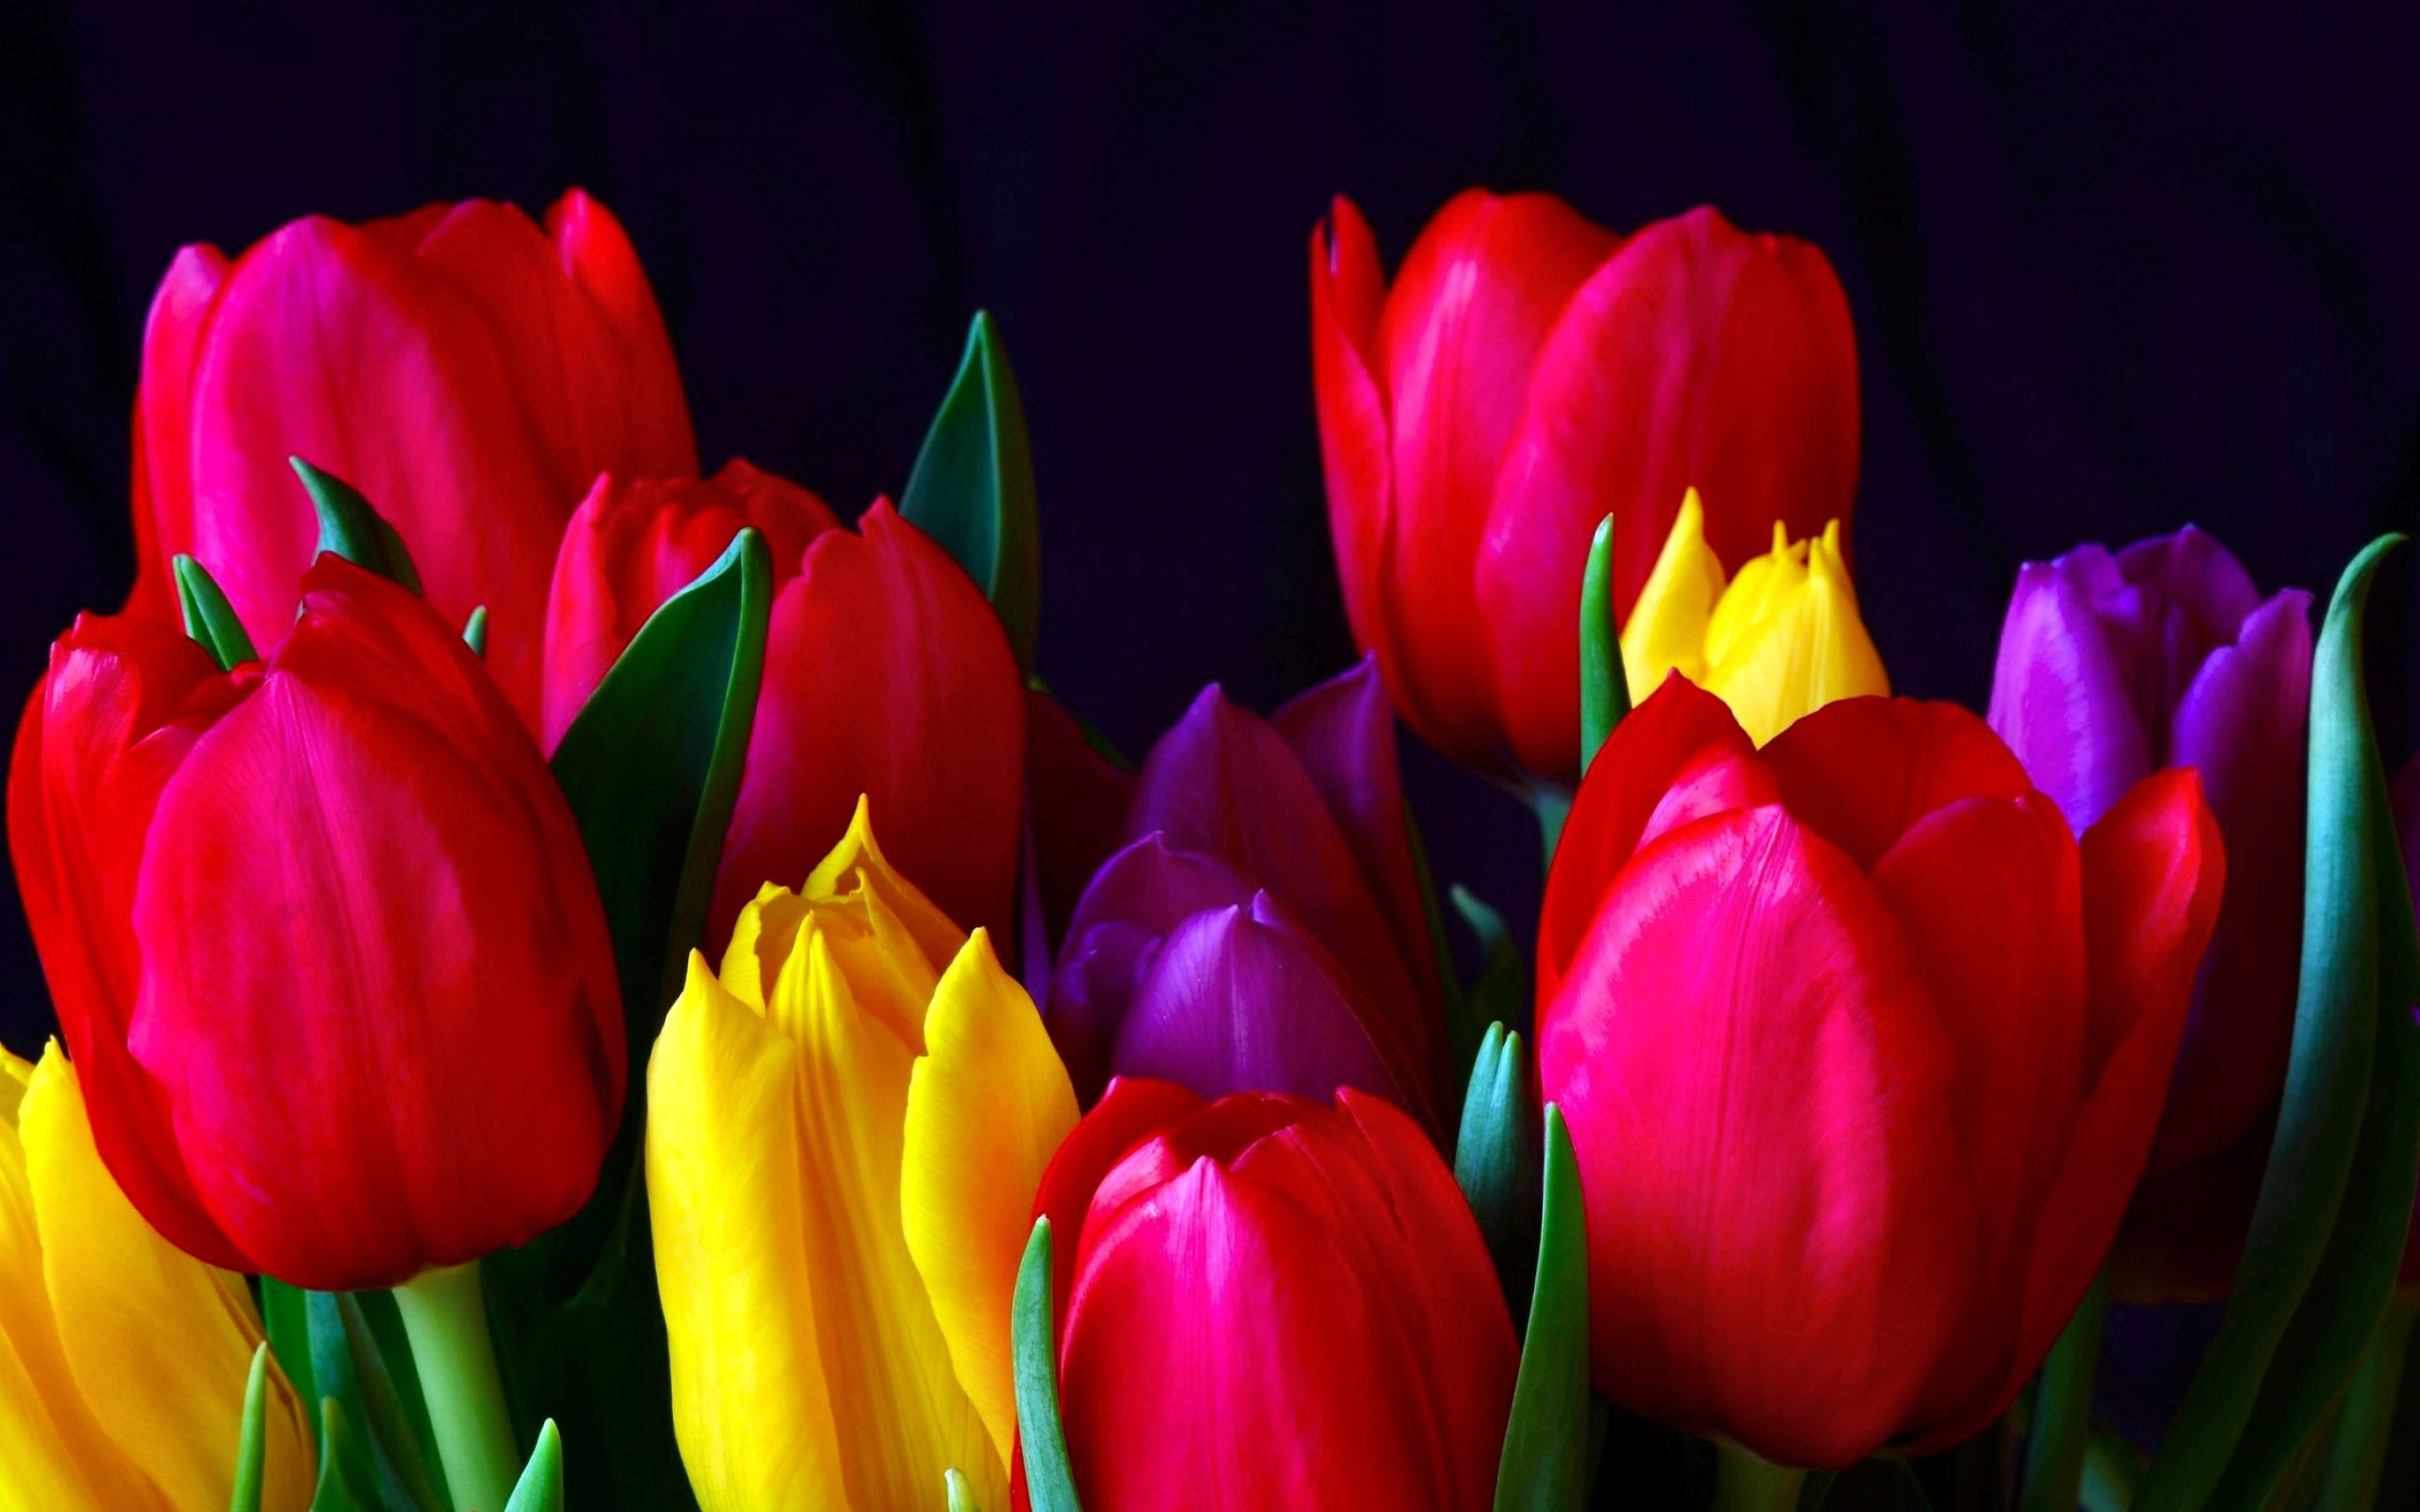 show me a picture of a tulip